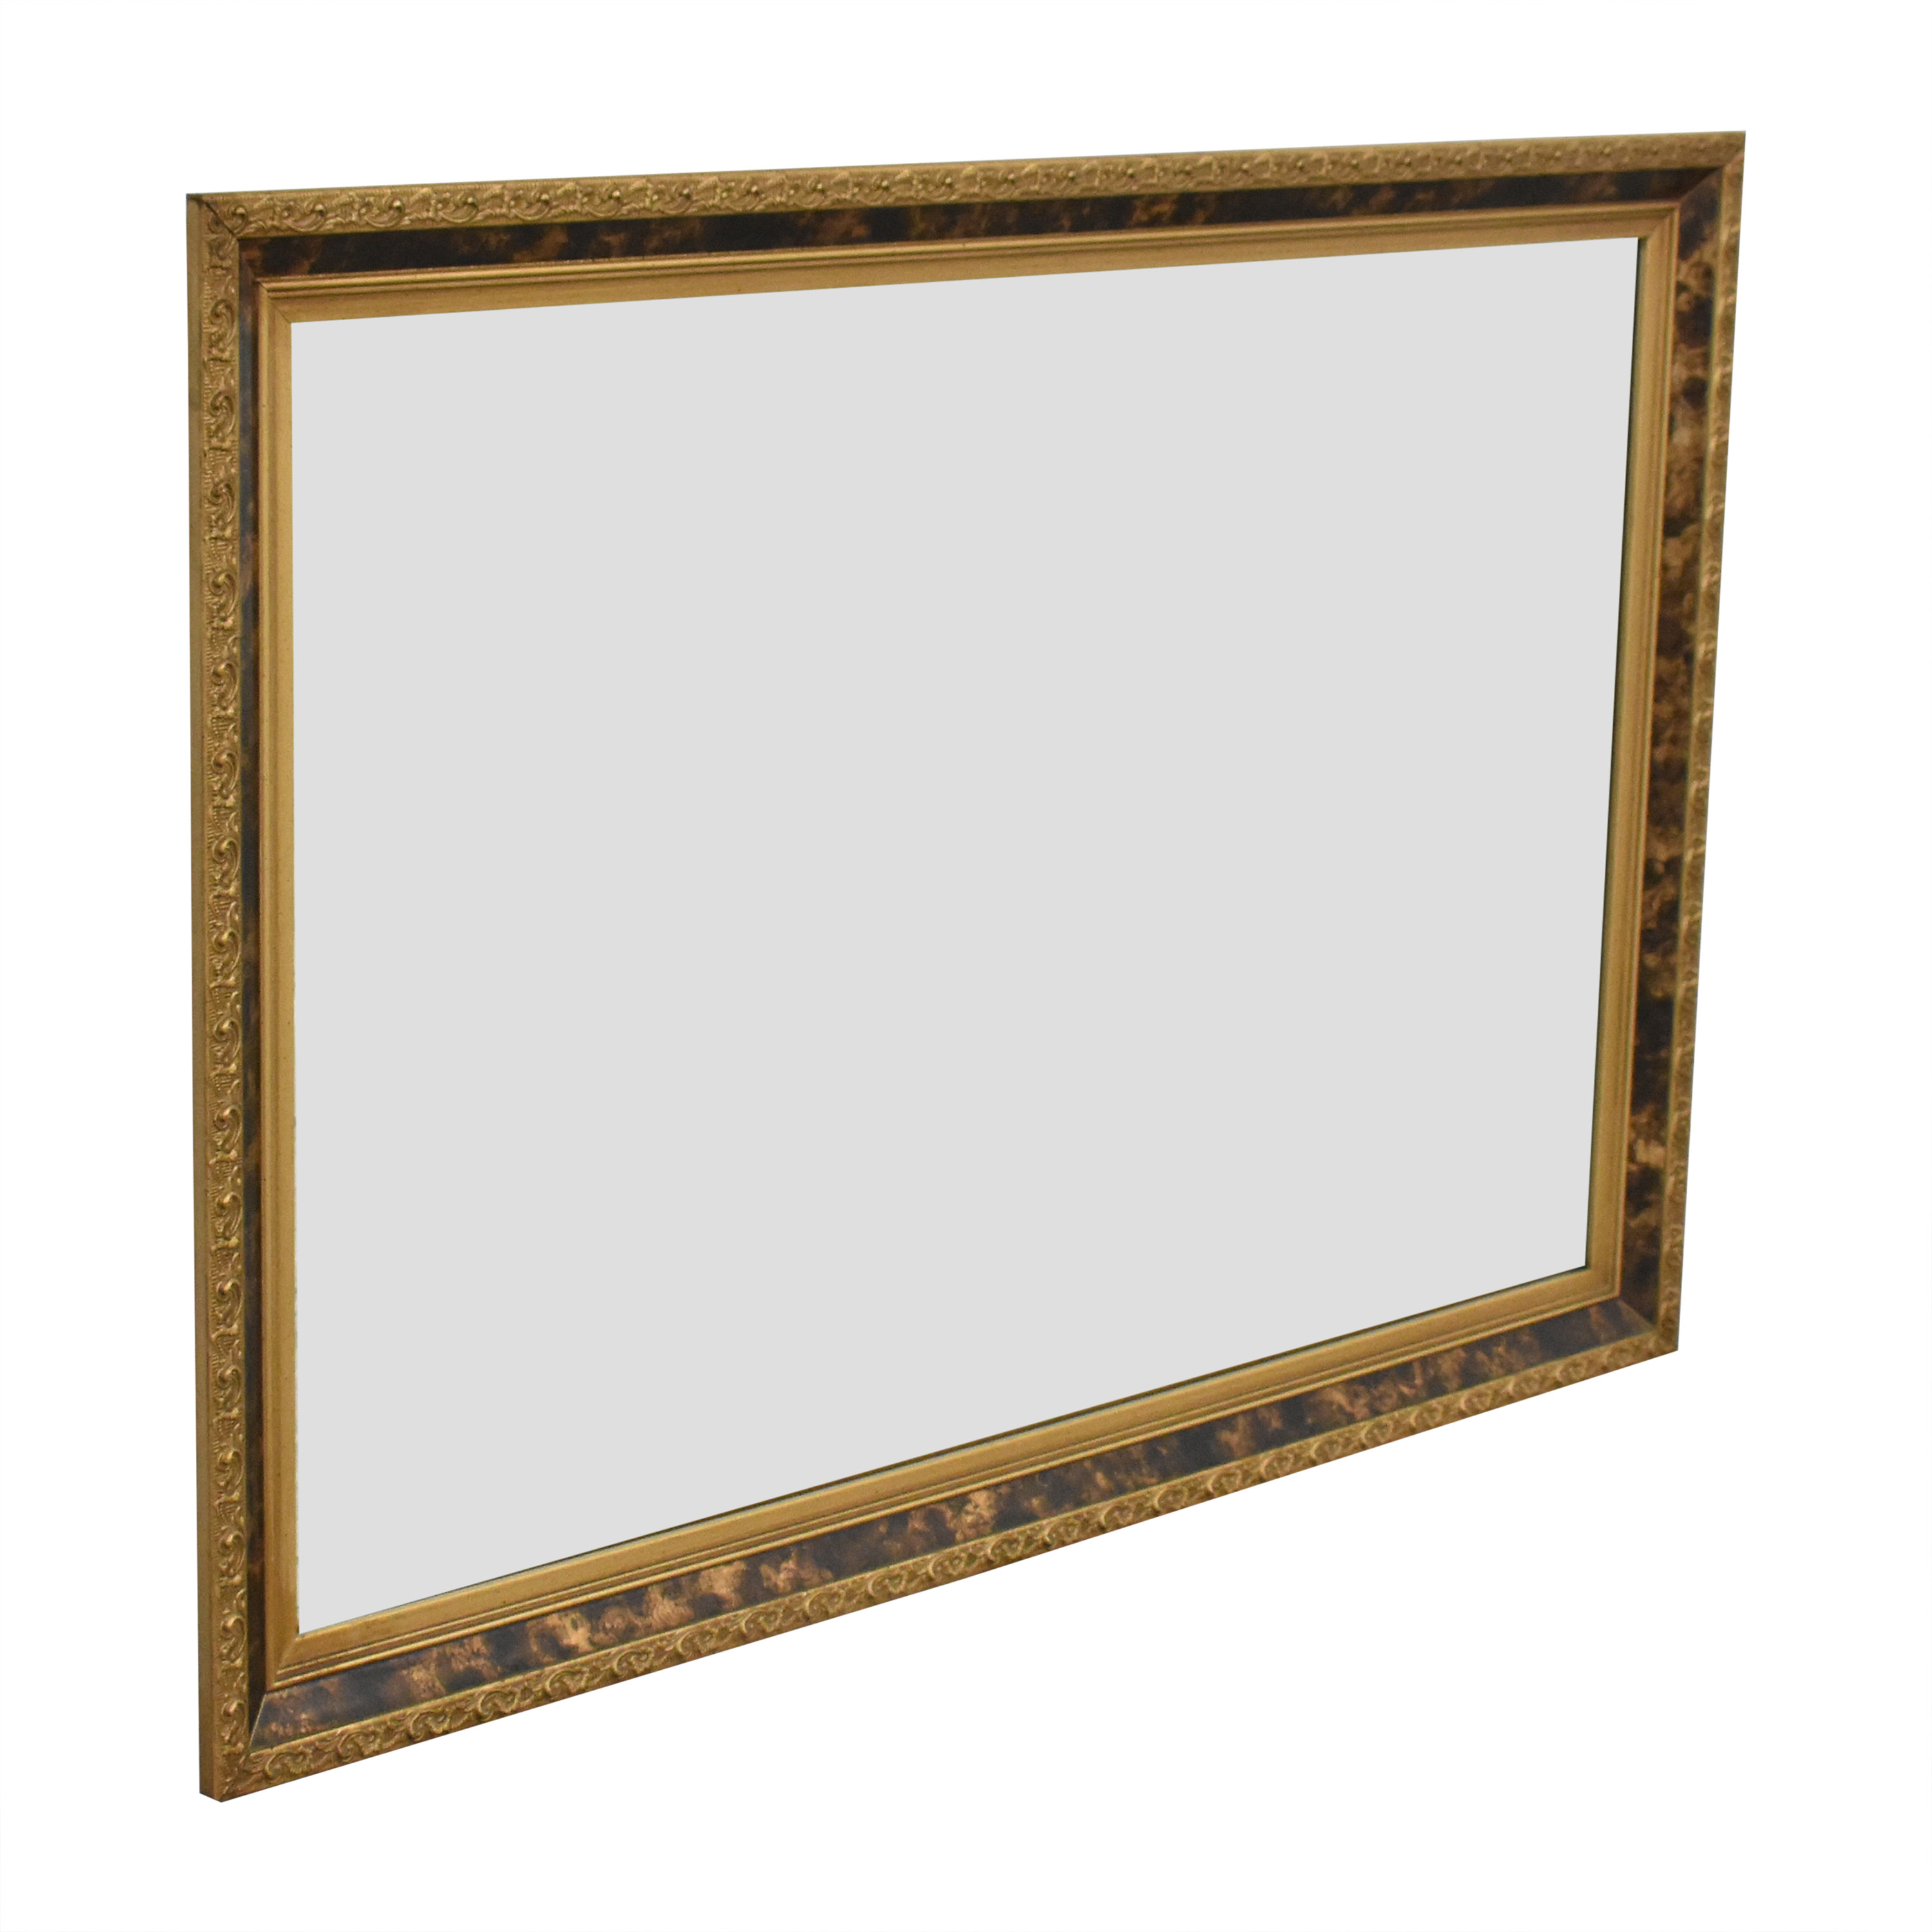 shop Turner Framed Wall Mirror Turner Decor